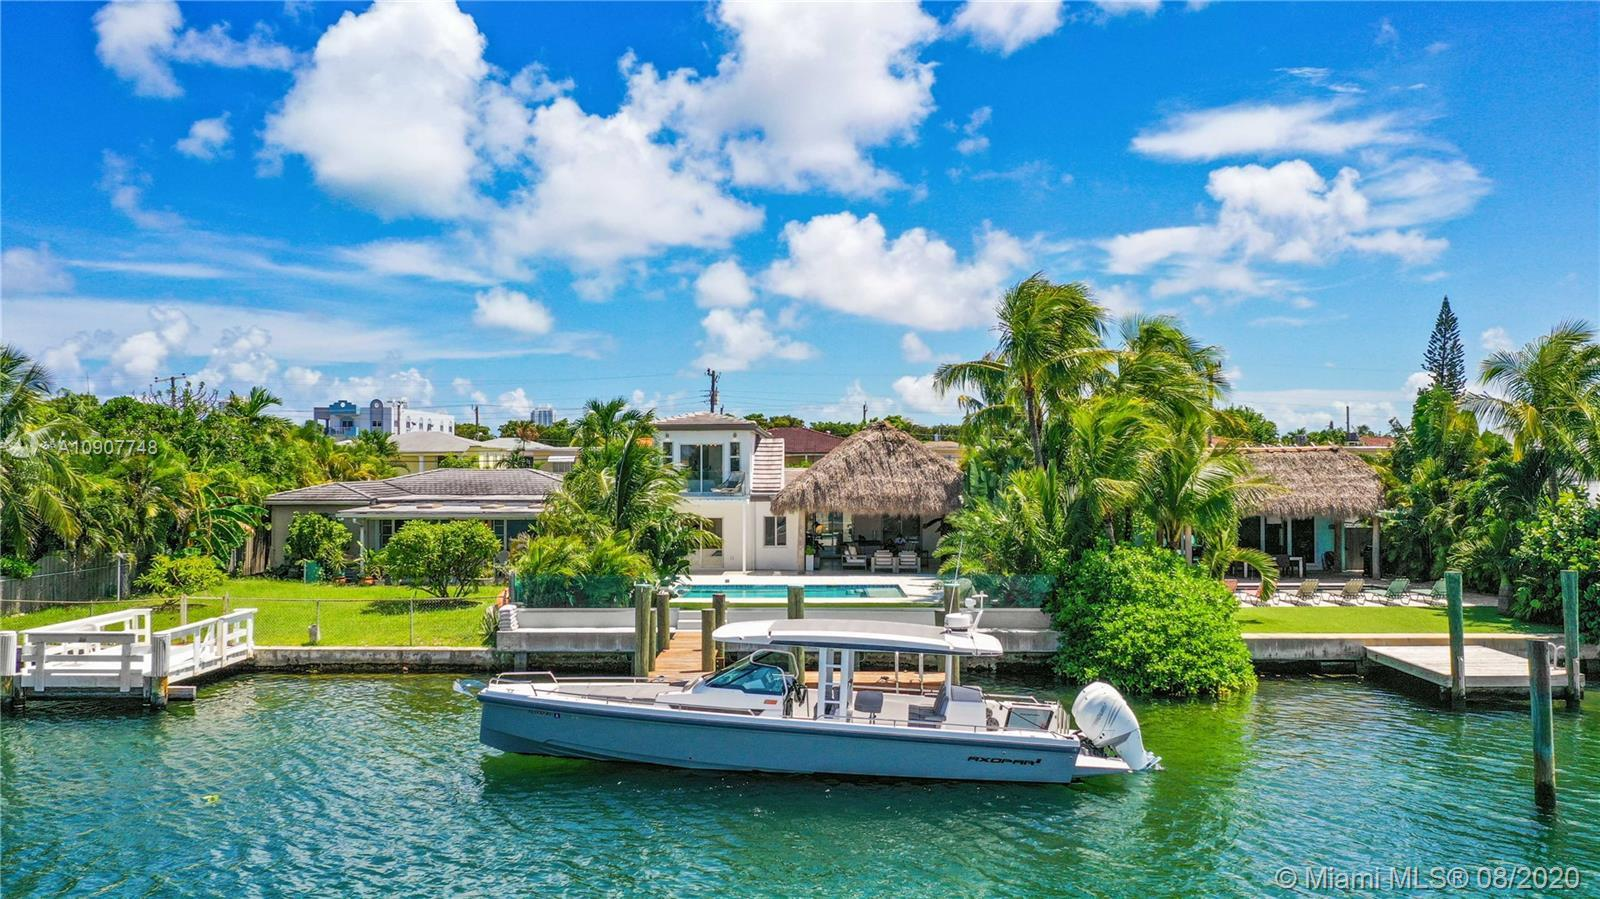 This is the one. This home epitomizes the reason to live in Miami. Located in deep water on a wide b